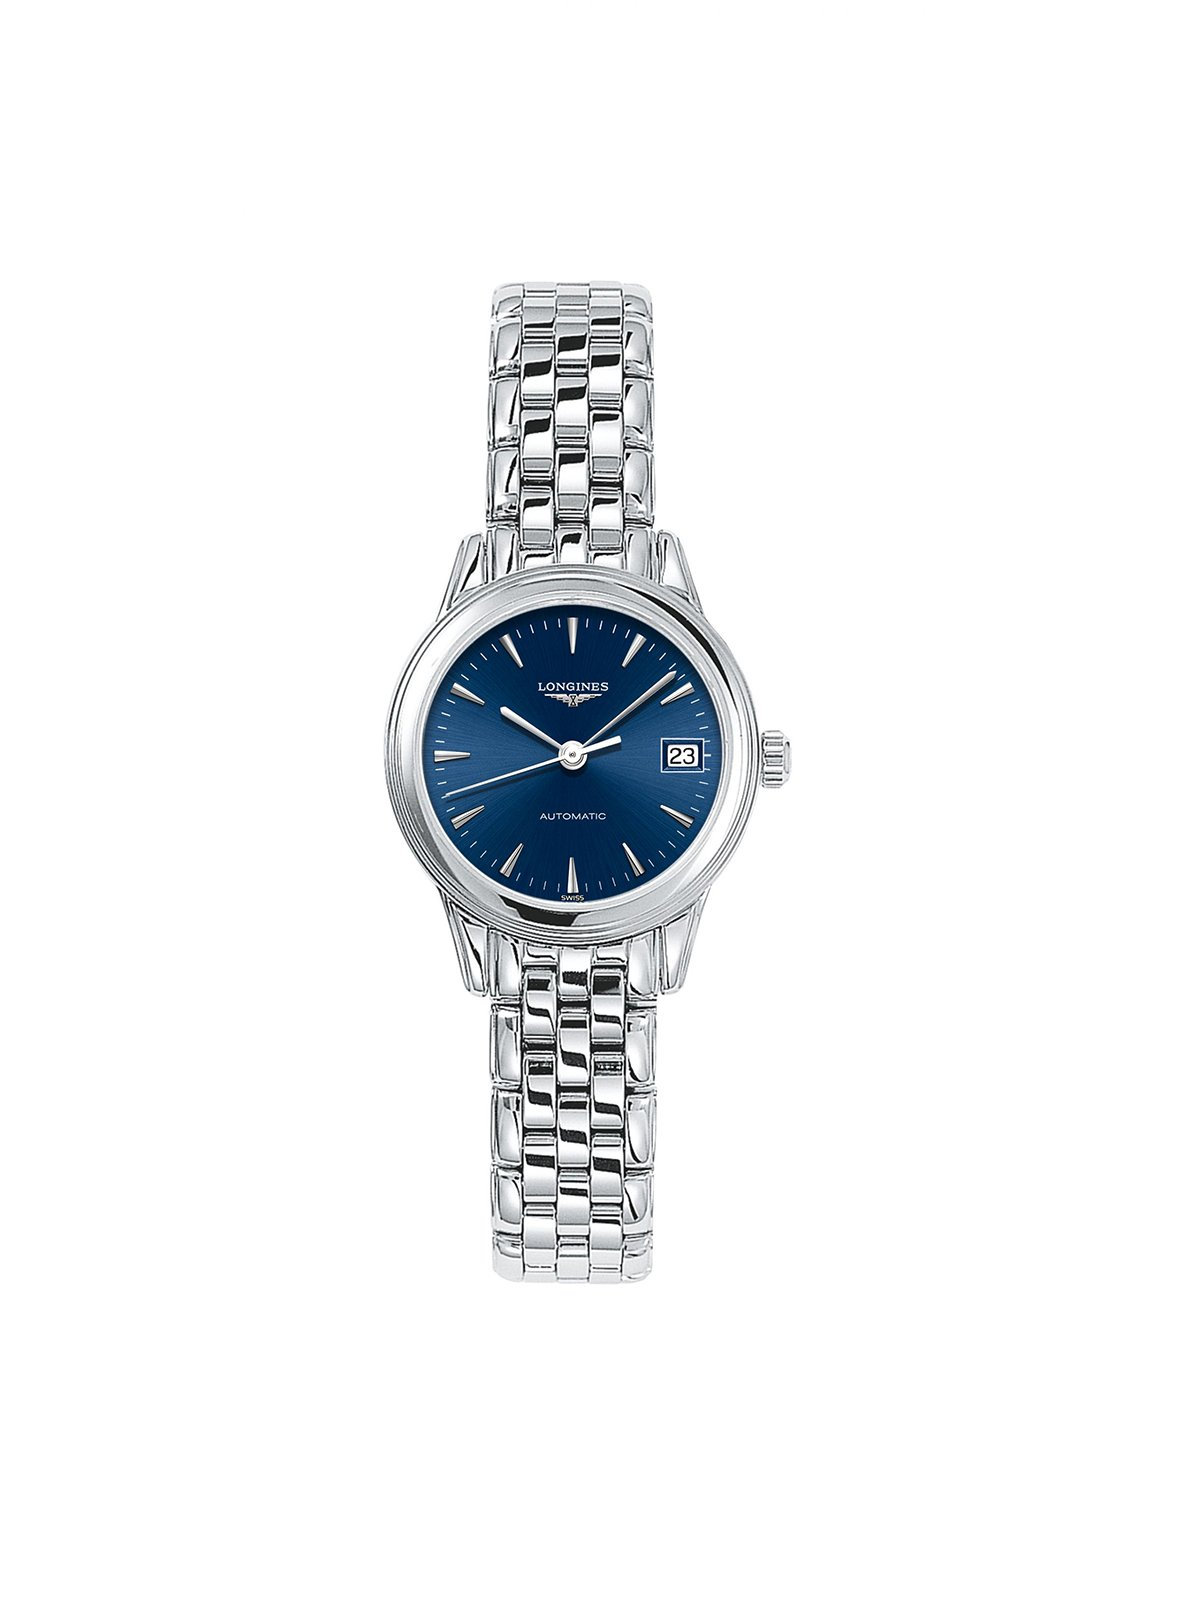 L4.274.4.92.6 Longines Ladies 26mm Flagship Steel Automatic Watch on Bracelet